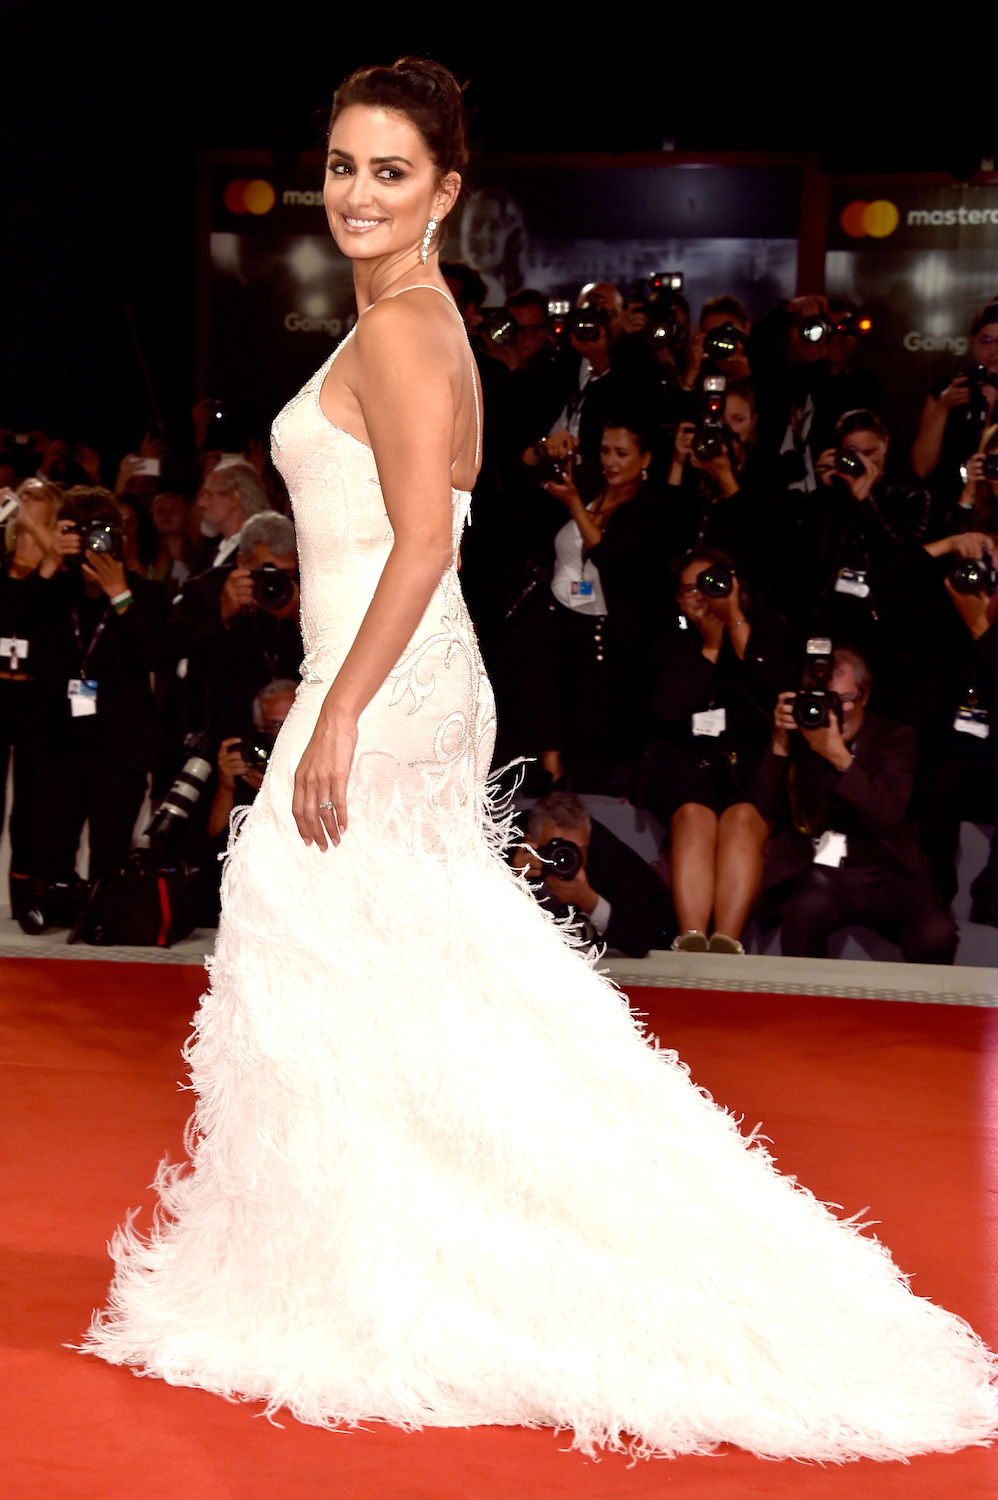 Red-Carpet Royalty: 15 Chic Celebrity Looks at the Venice Film Festival